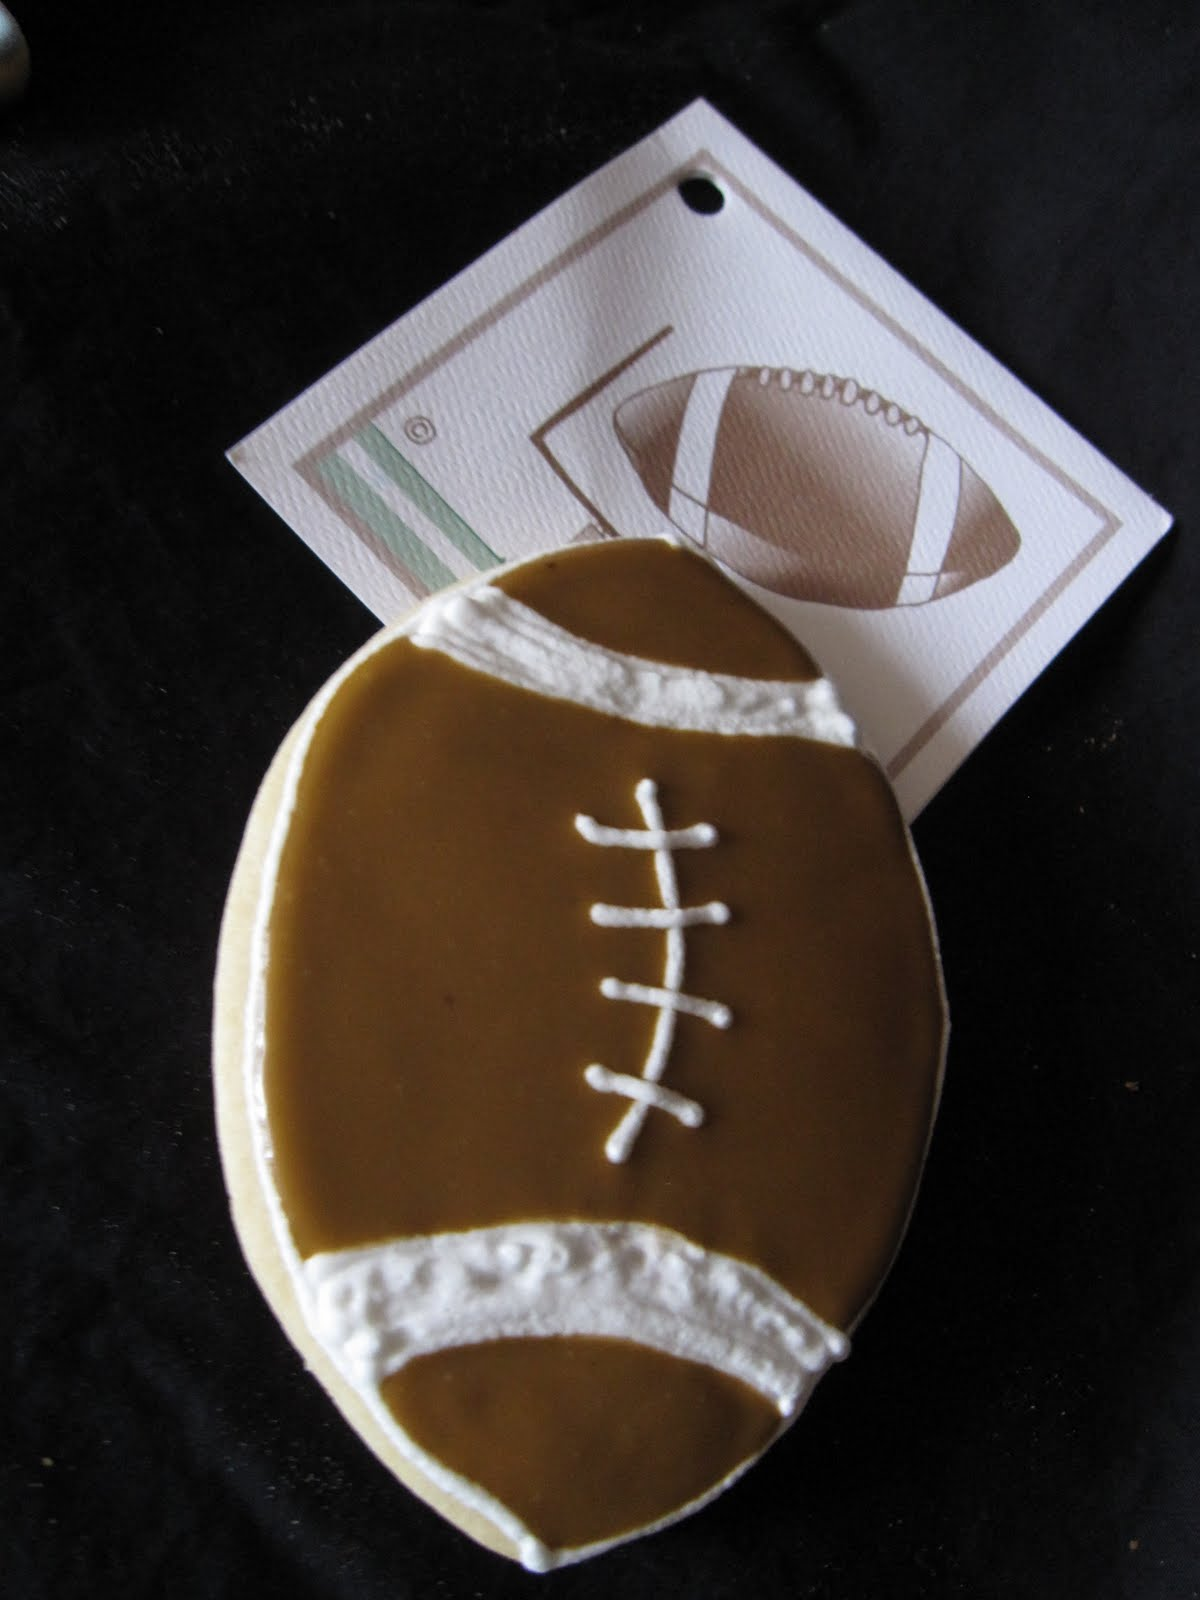 Cookie decorated as a football